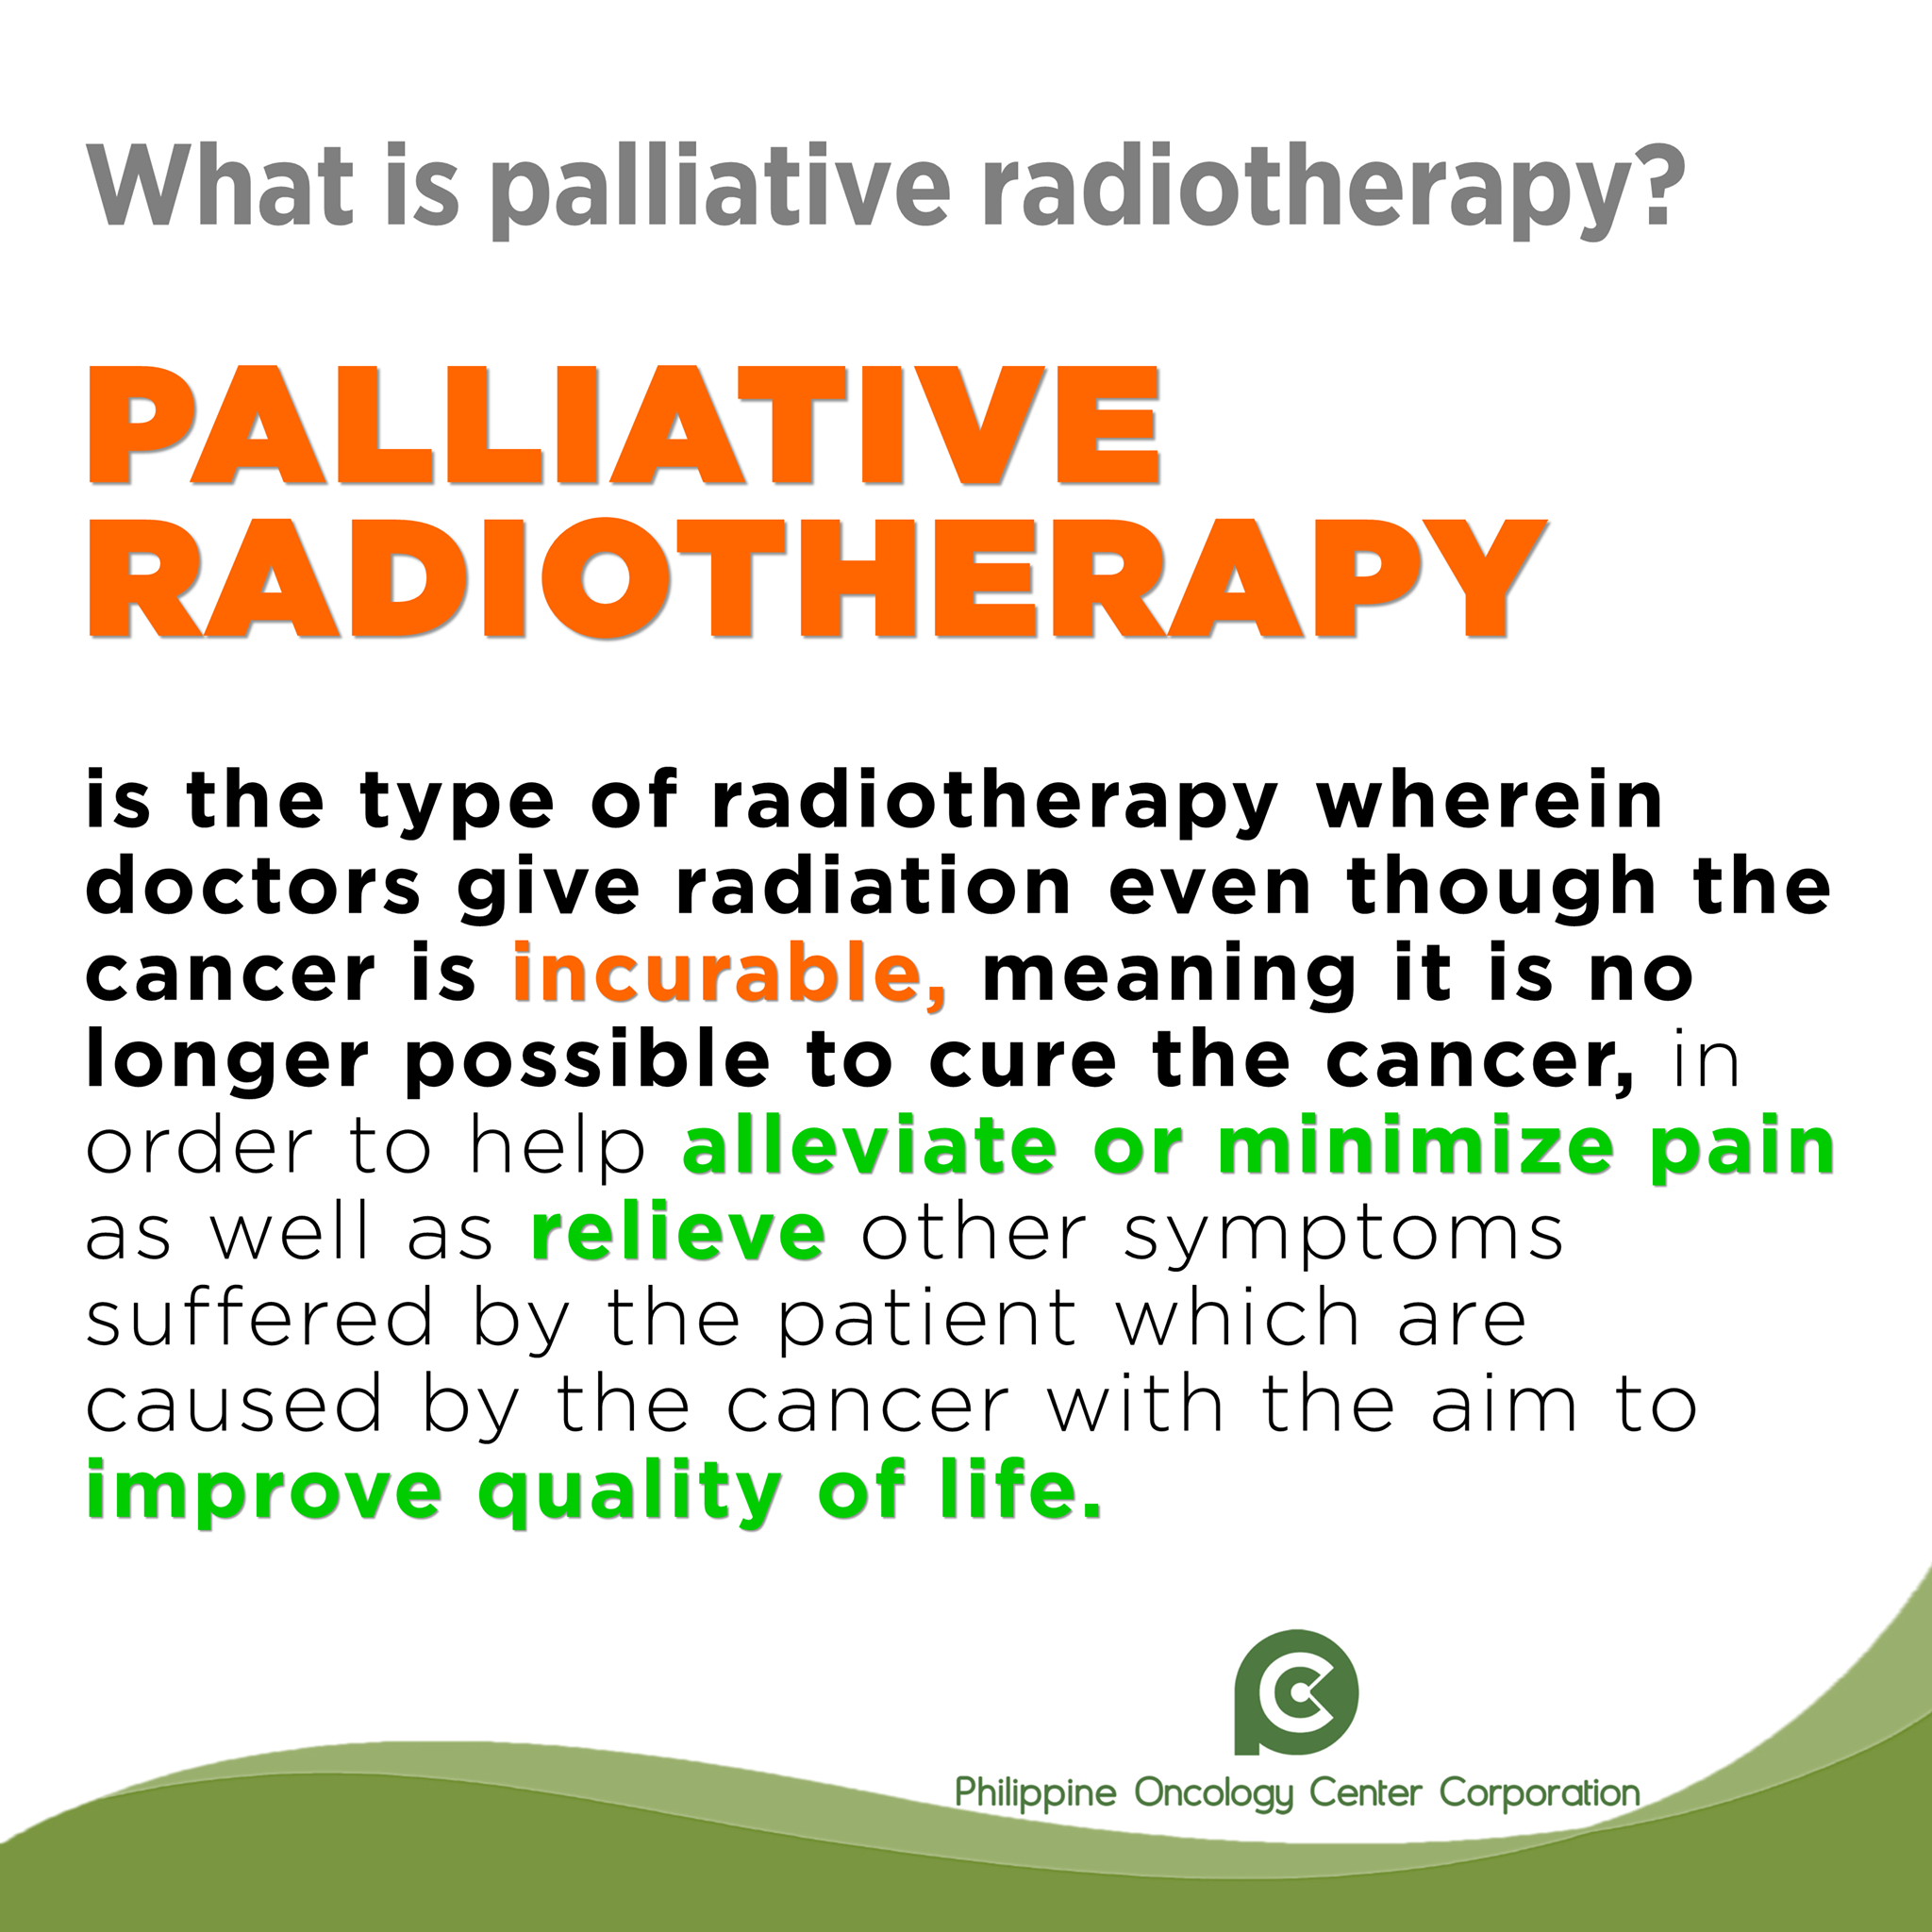 What is Palliative Radiotherapy?